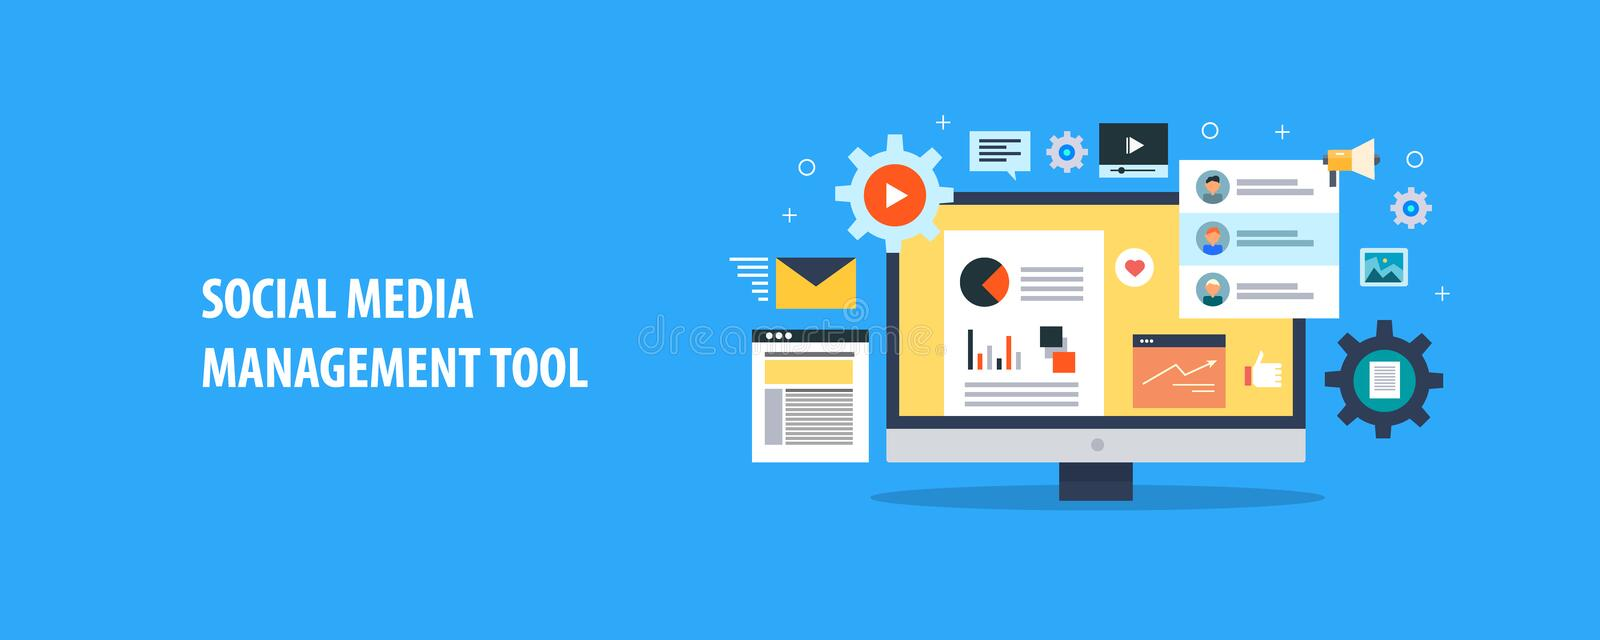 Social media management tools - social media automation - content management system. Flat design vector banner. Social media management and automation concept royalty free illustration